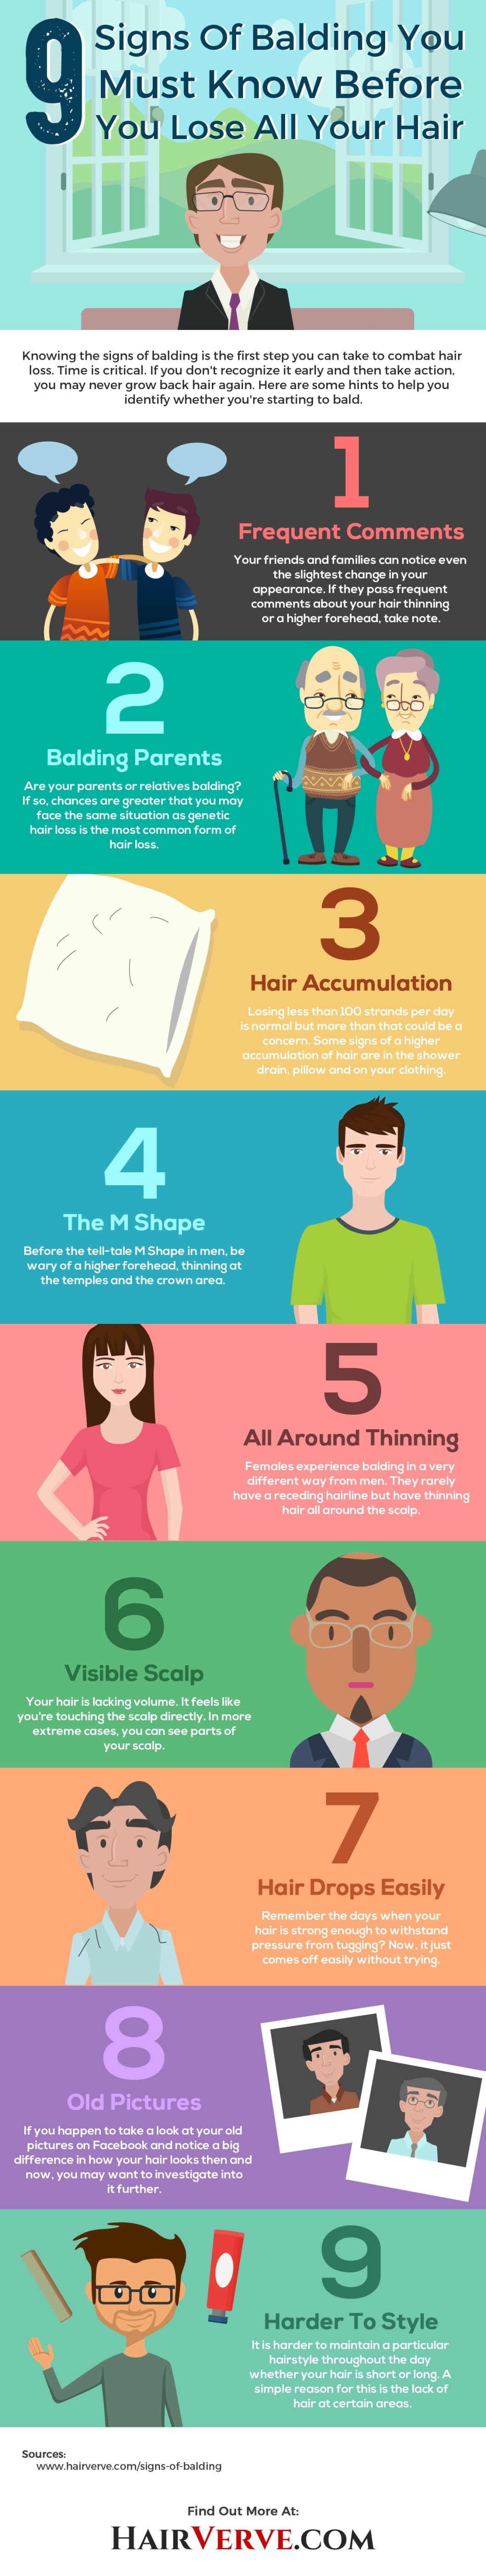 How To Know If You're Balding - Infographic